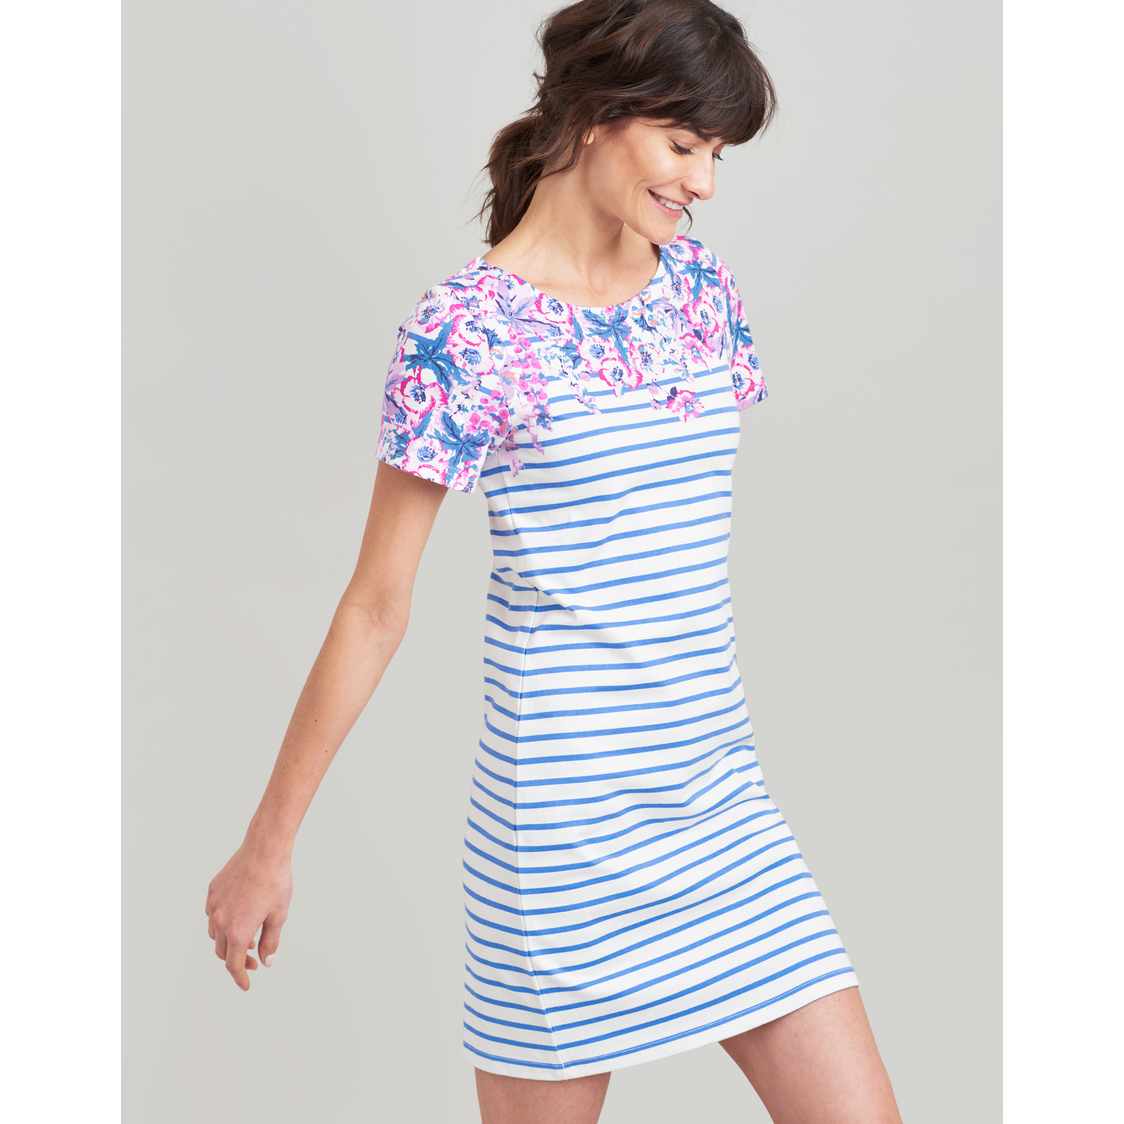 Riviera Print Dress With Short Sleeves Blue Floral Stripe